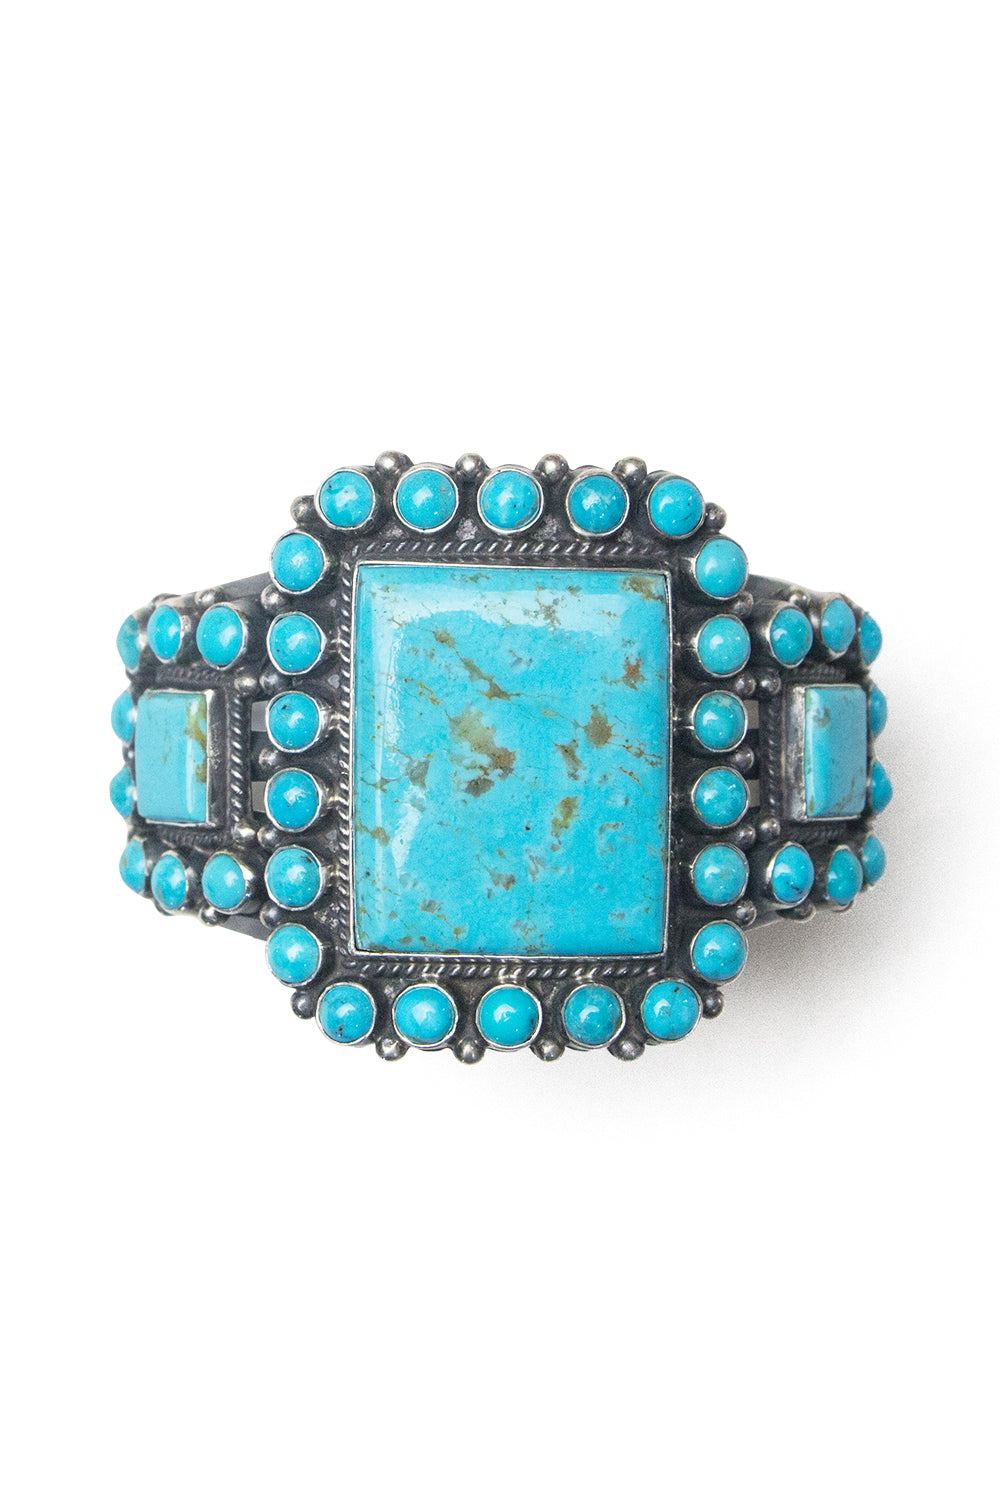 Cuff, Turquoise, Cluster, Cameo, Hallmark, 2539